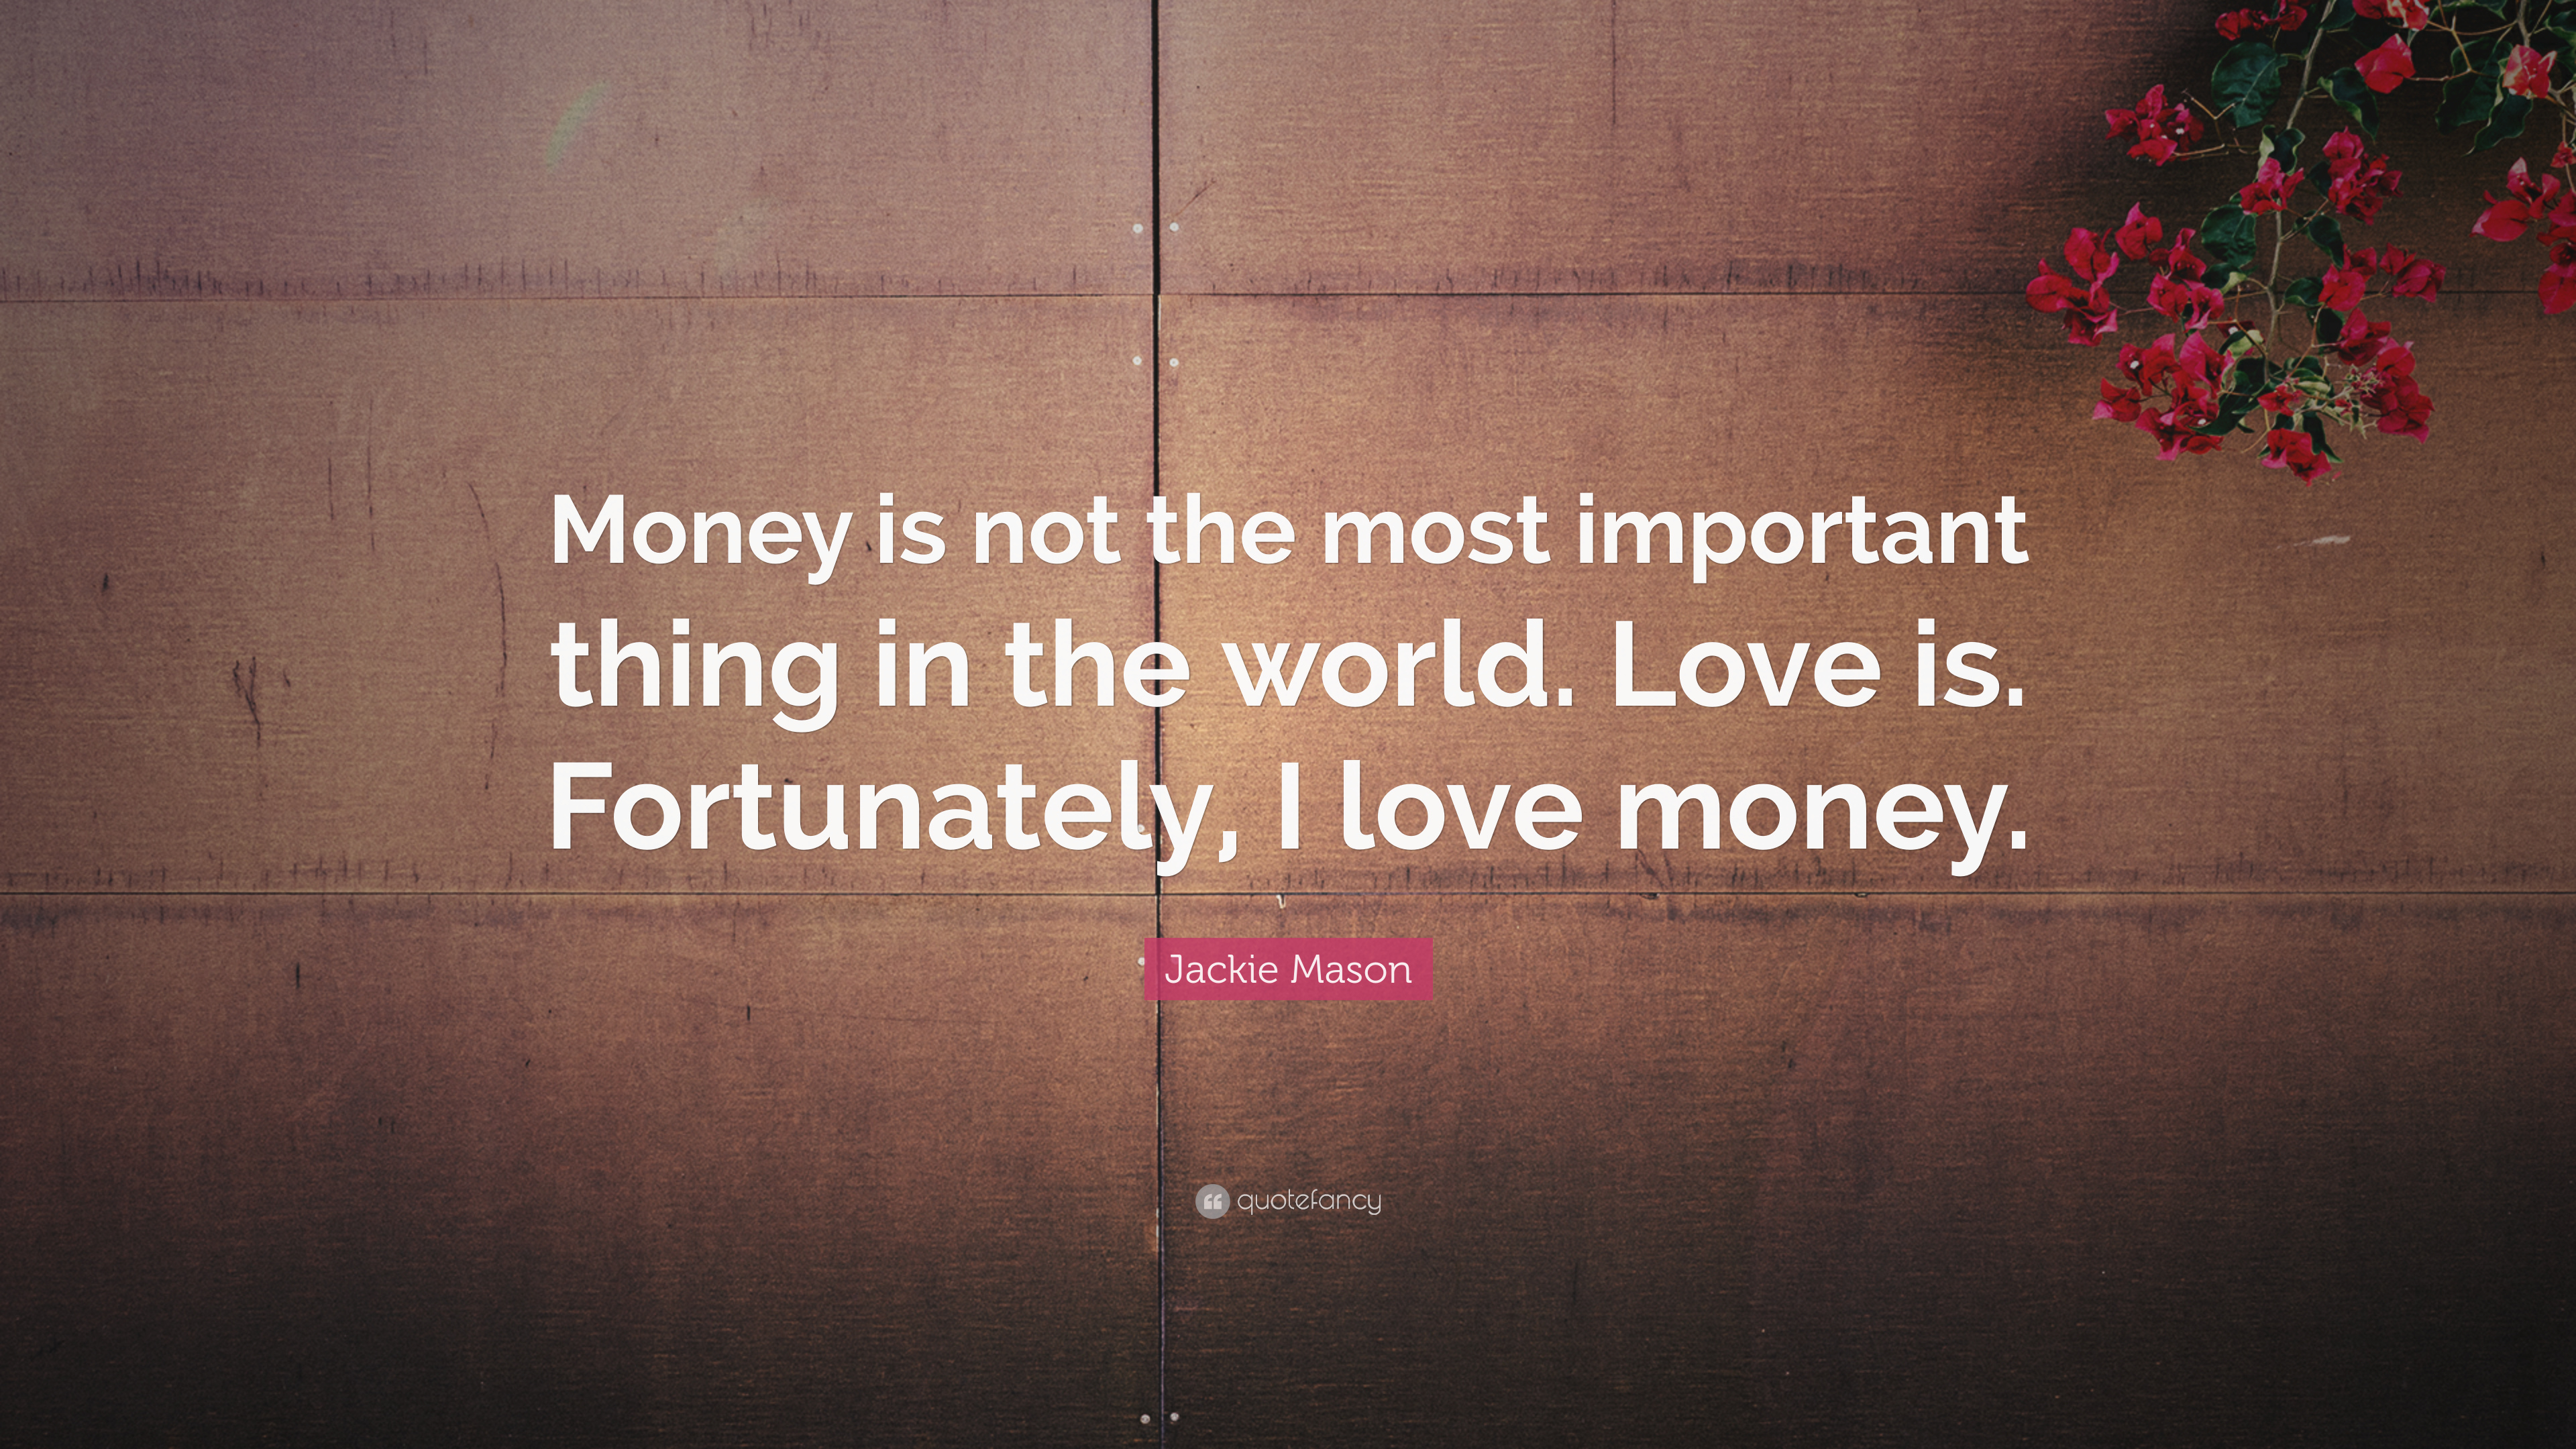 Can We Agree That Money Is Important?